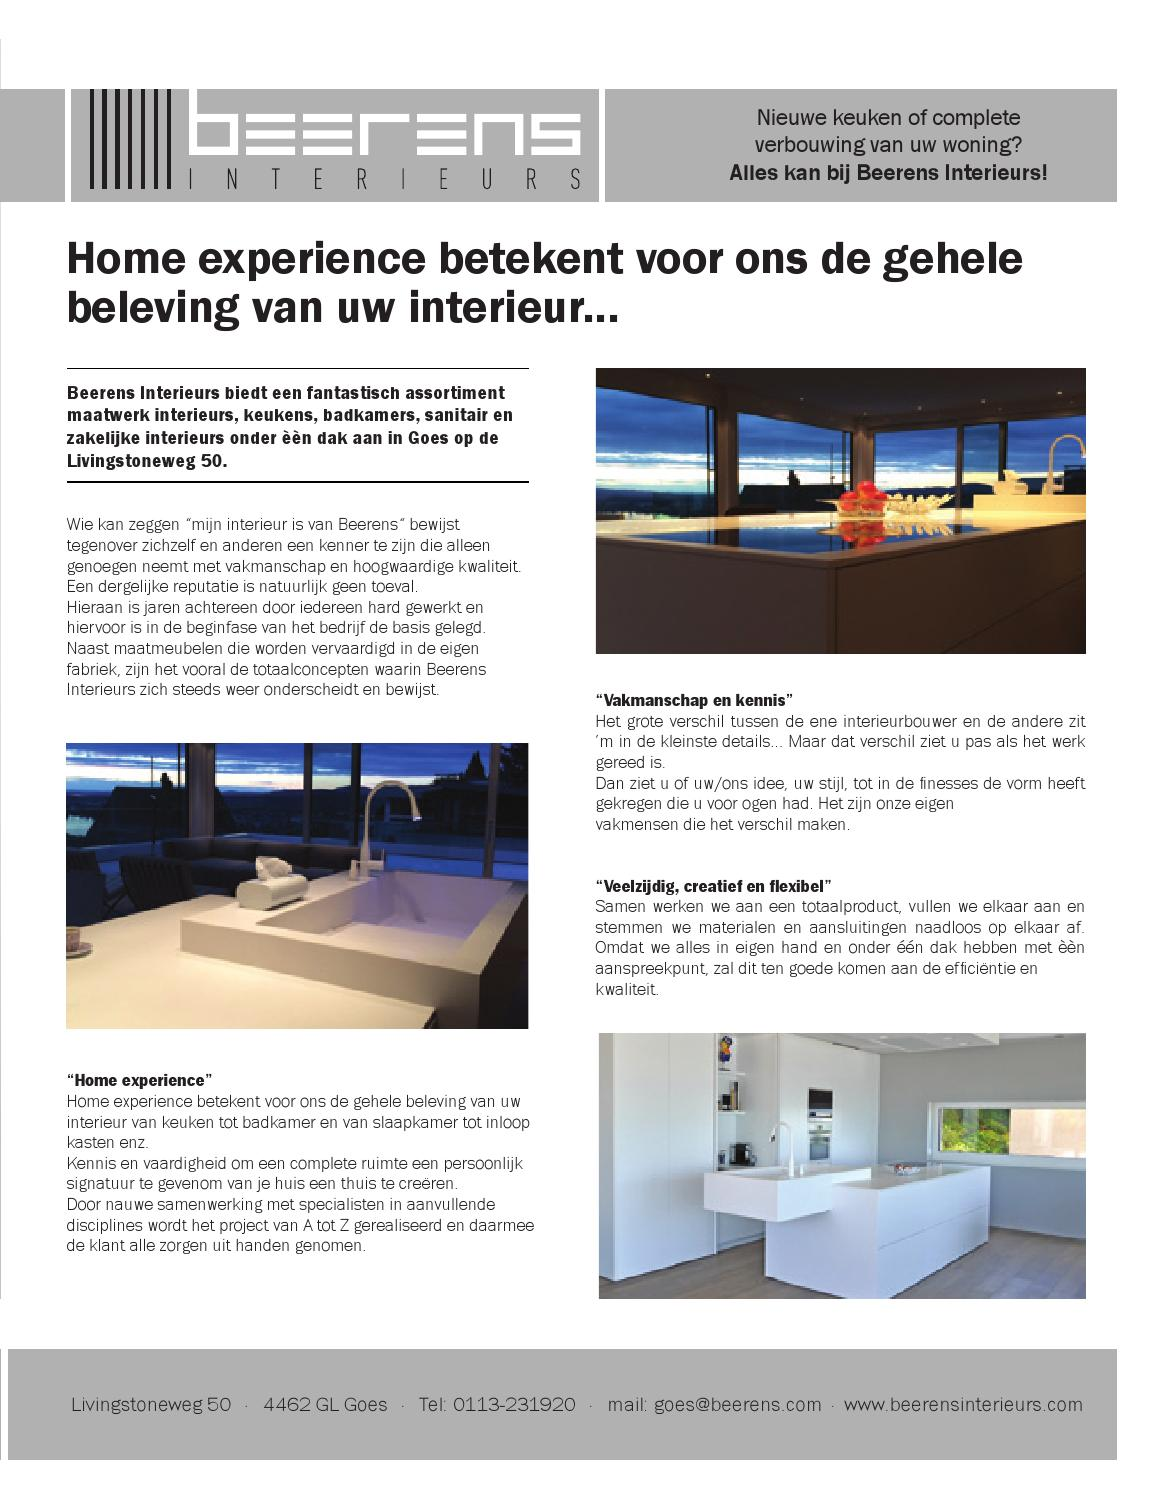 vivace magazine najaar 2015 by quaeris media bv issuu